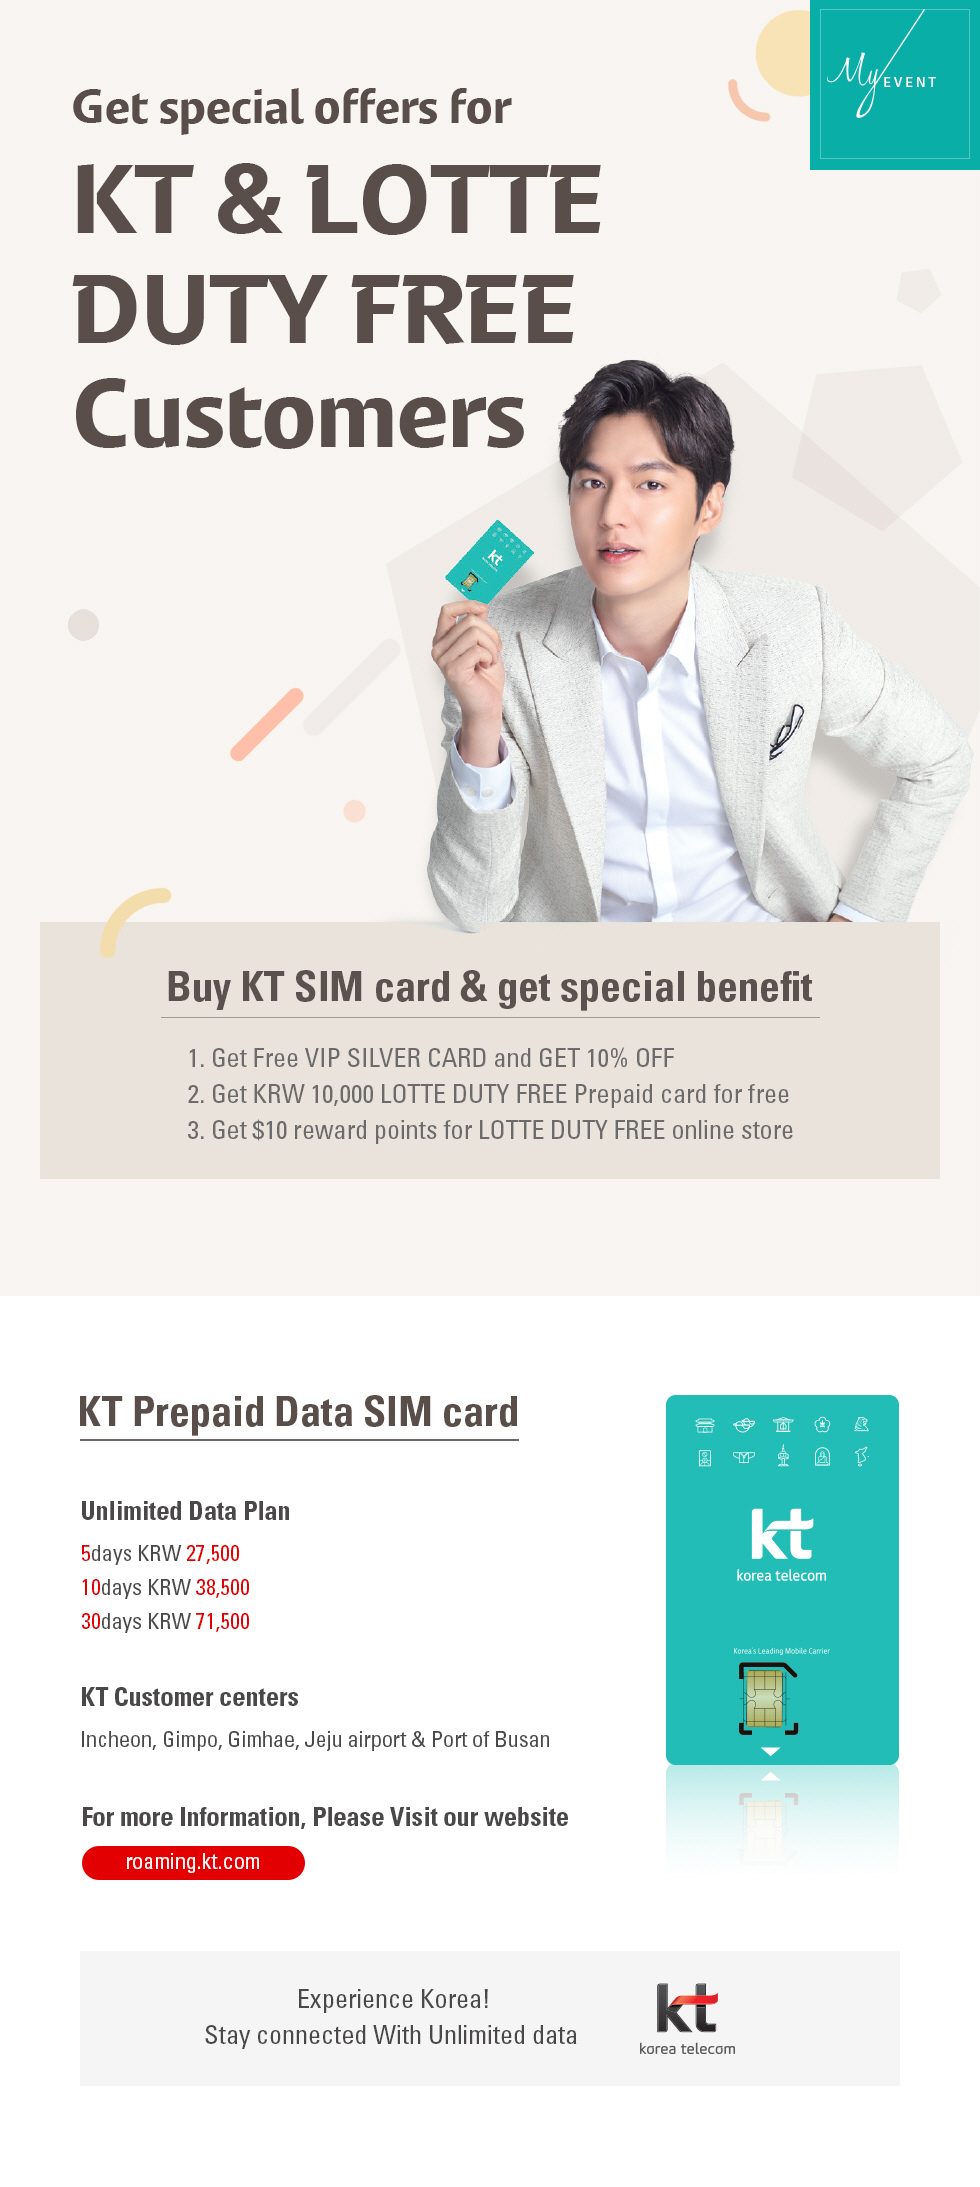 Get special offers for KT & LOTTE DUTY FREE Customers